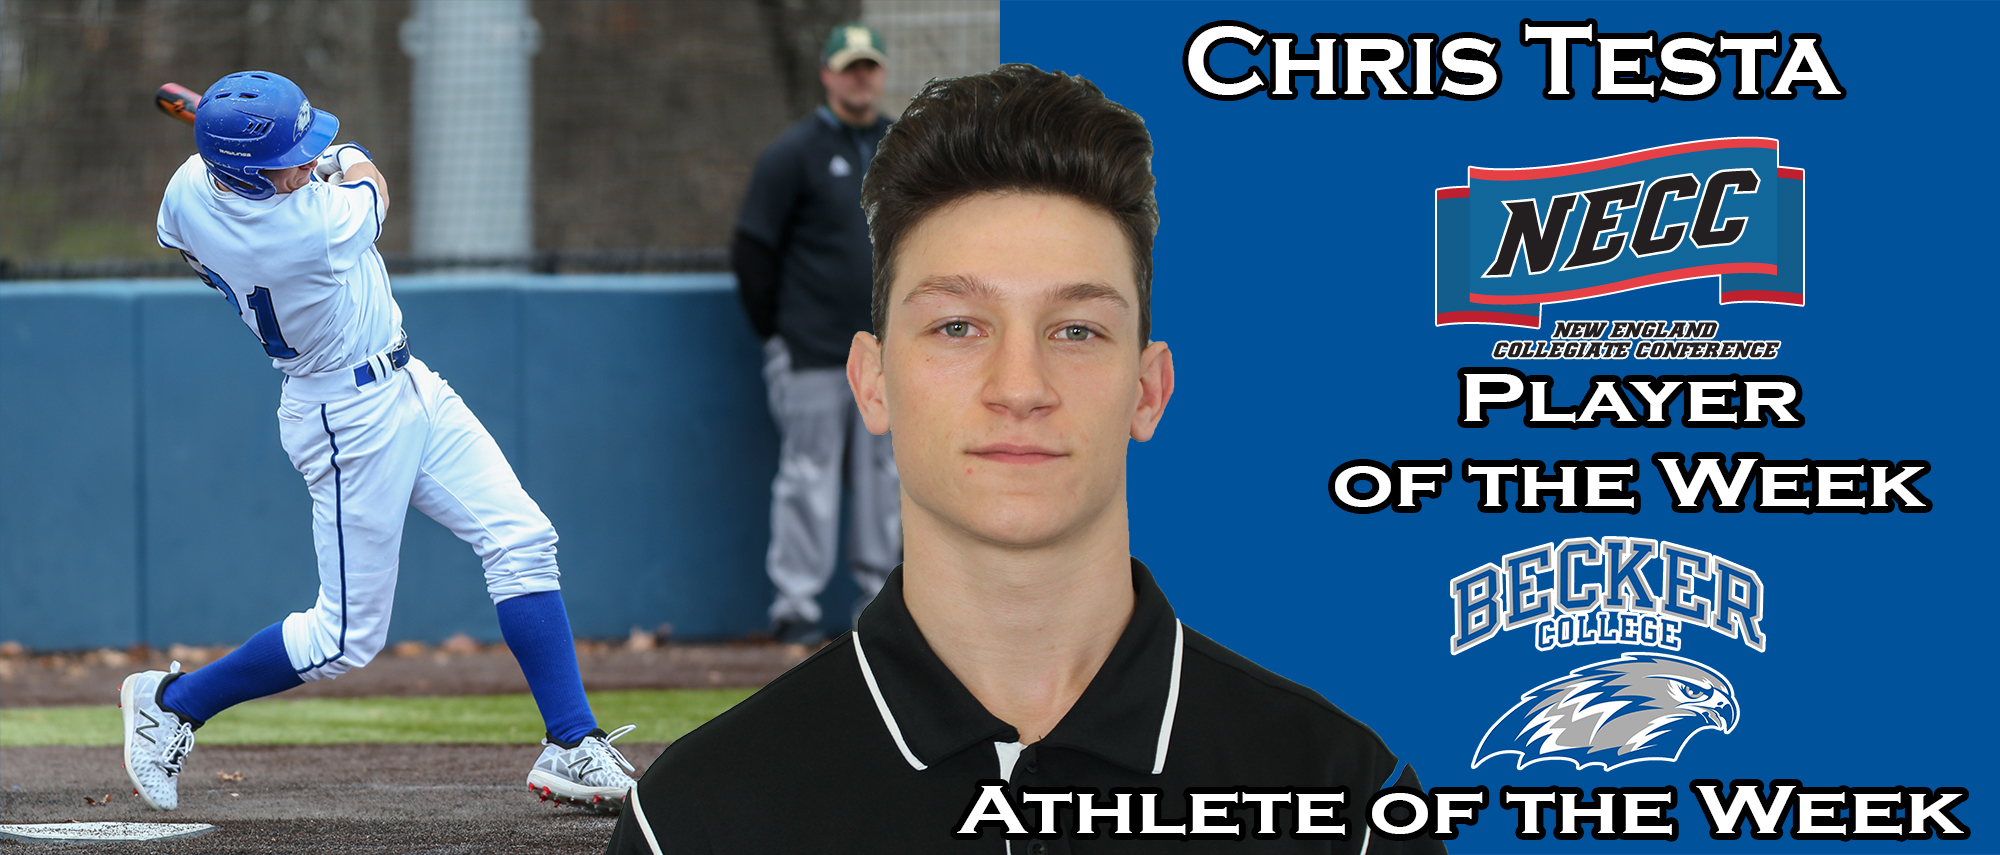 Chris Testa 